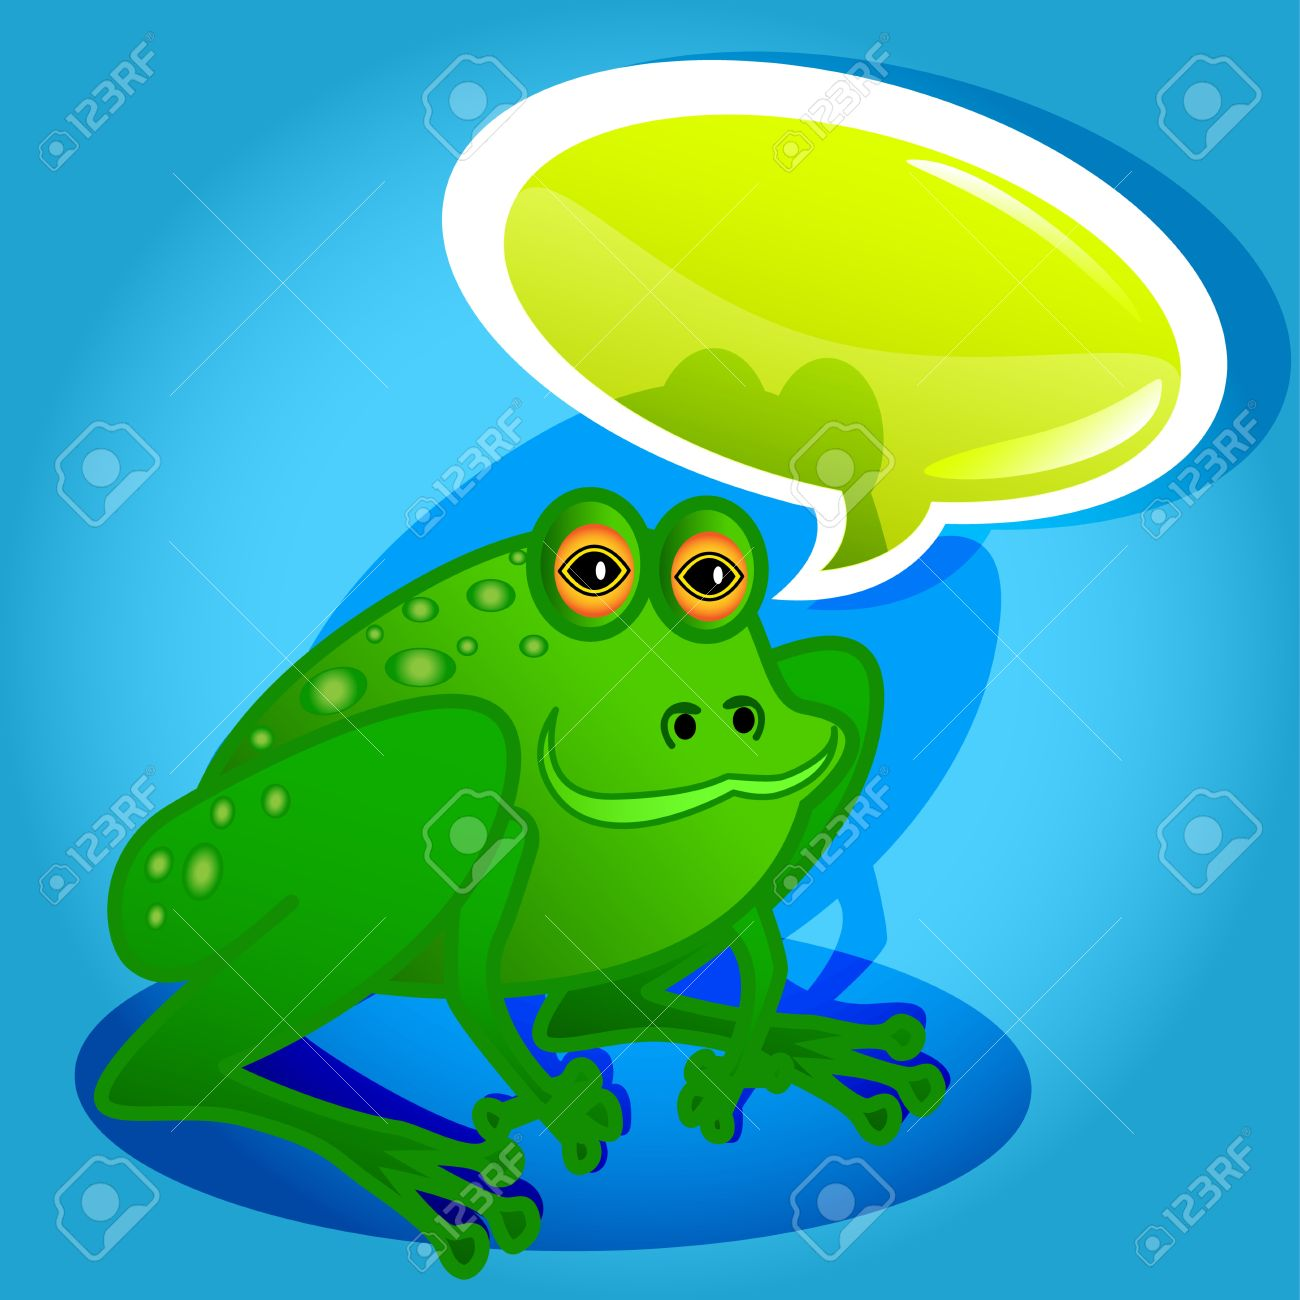 Funny and cute frog cartoon characters talking with glossy speech bubble. Stock Vector - 13069877